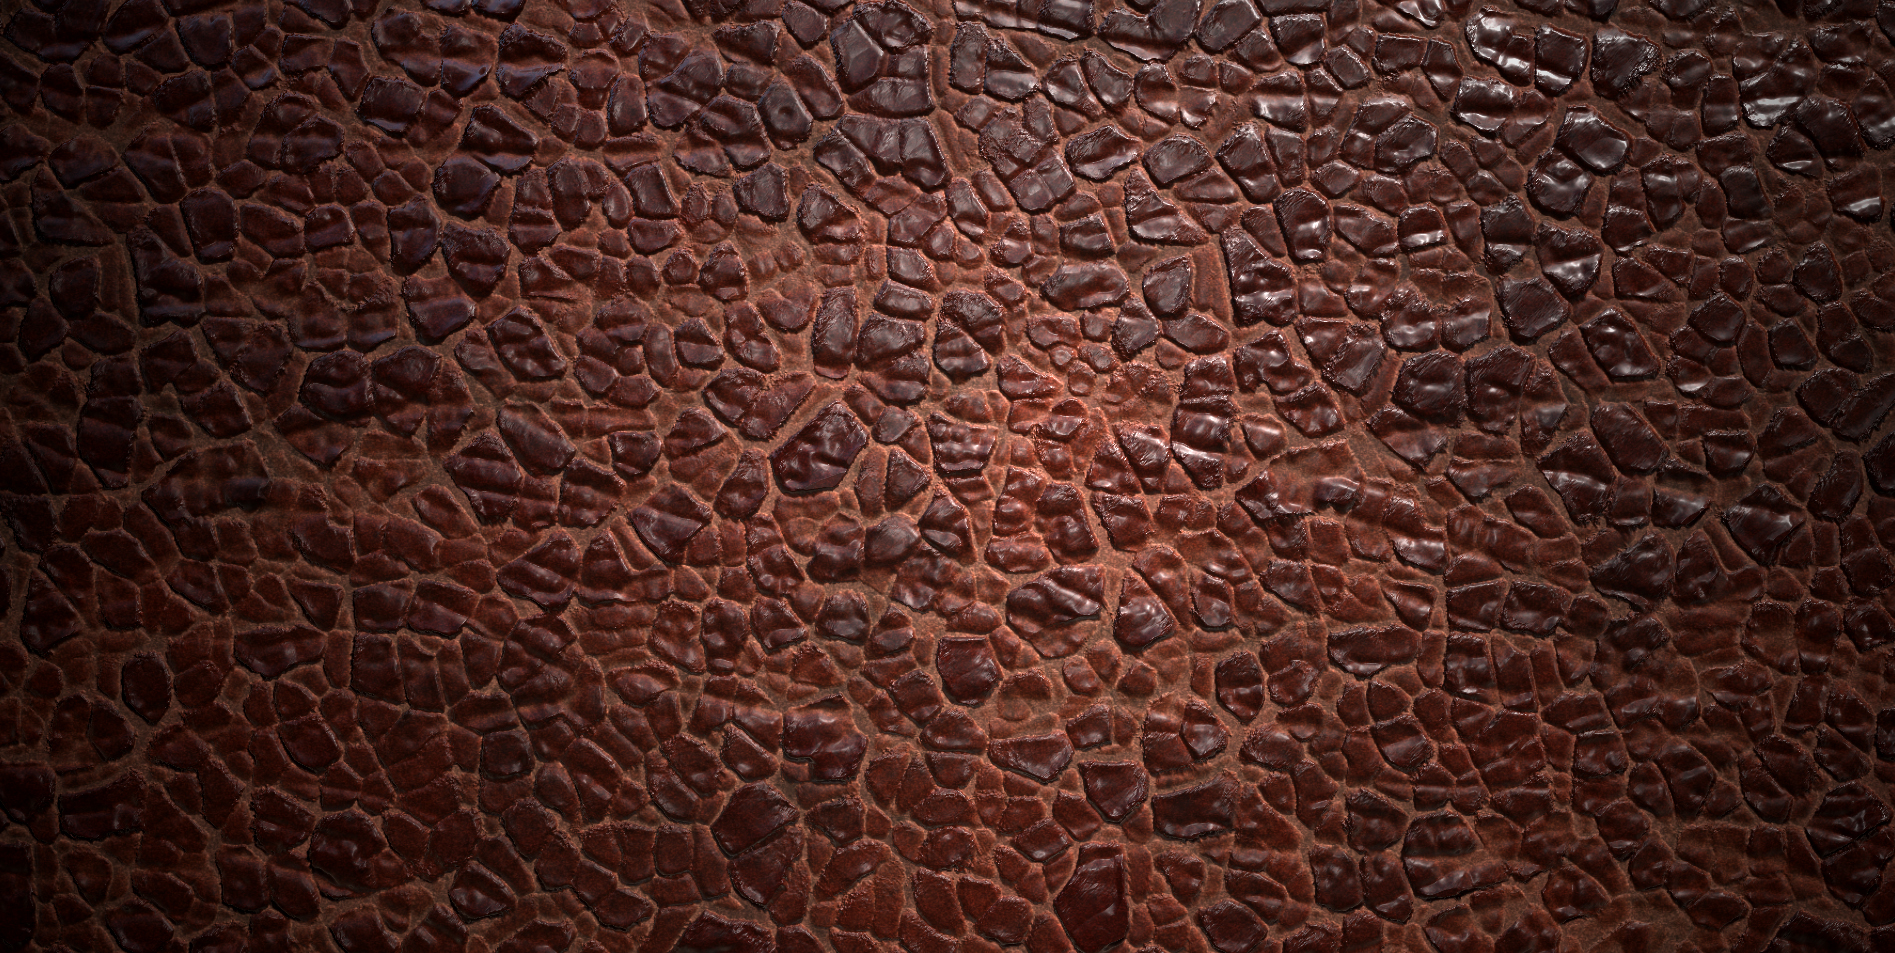 Procedural Leather Hugo Beyer